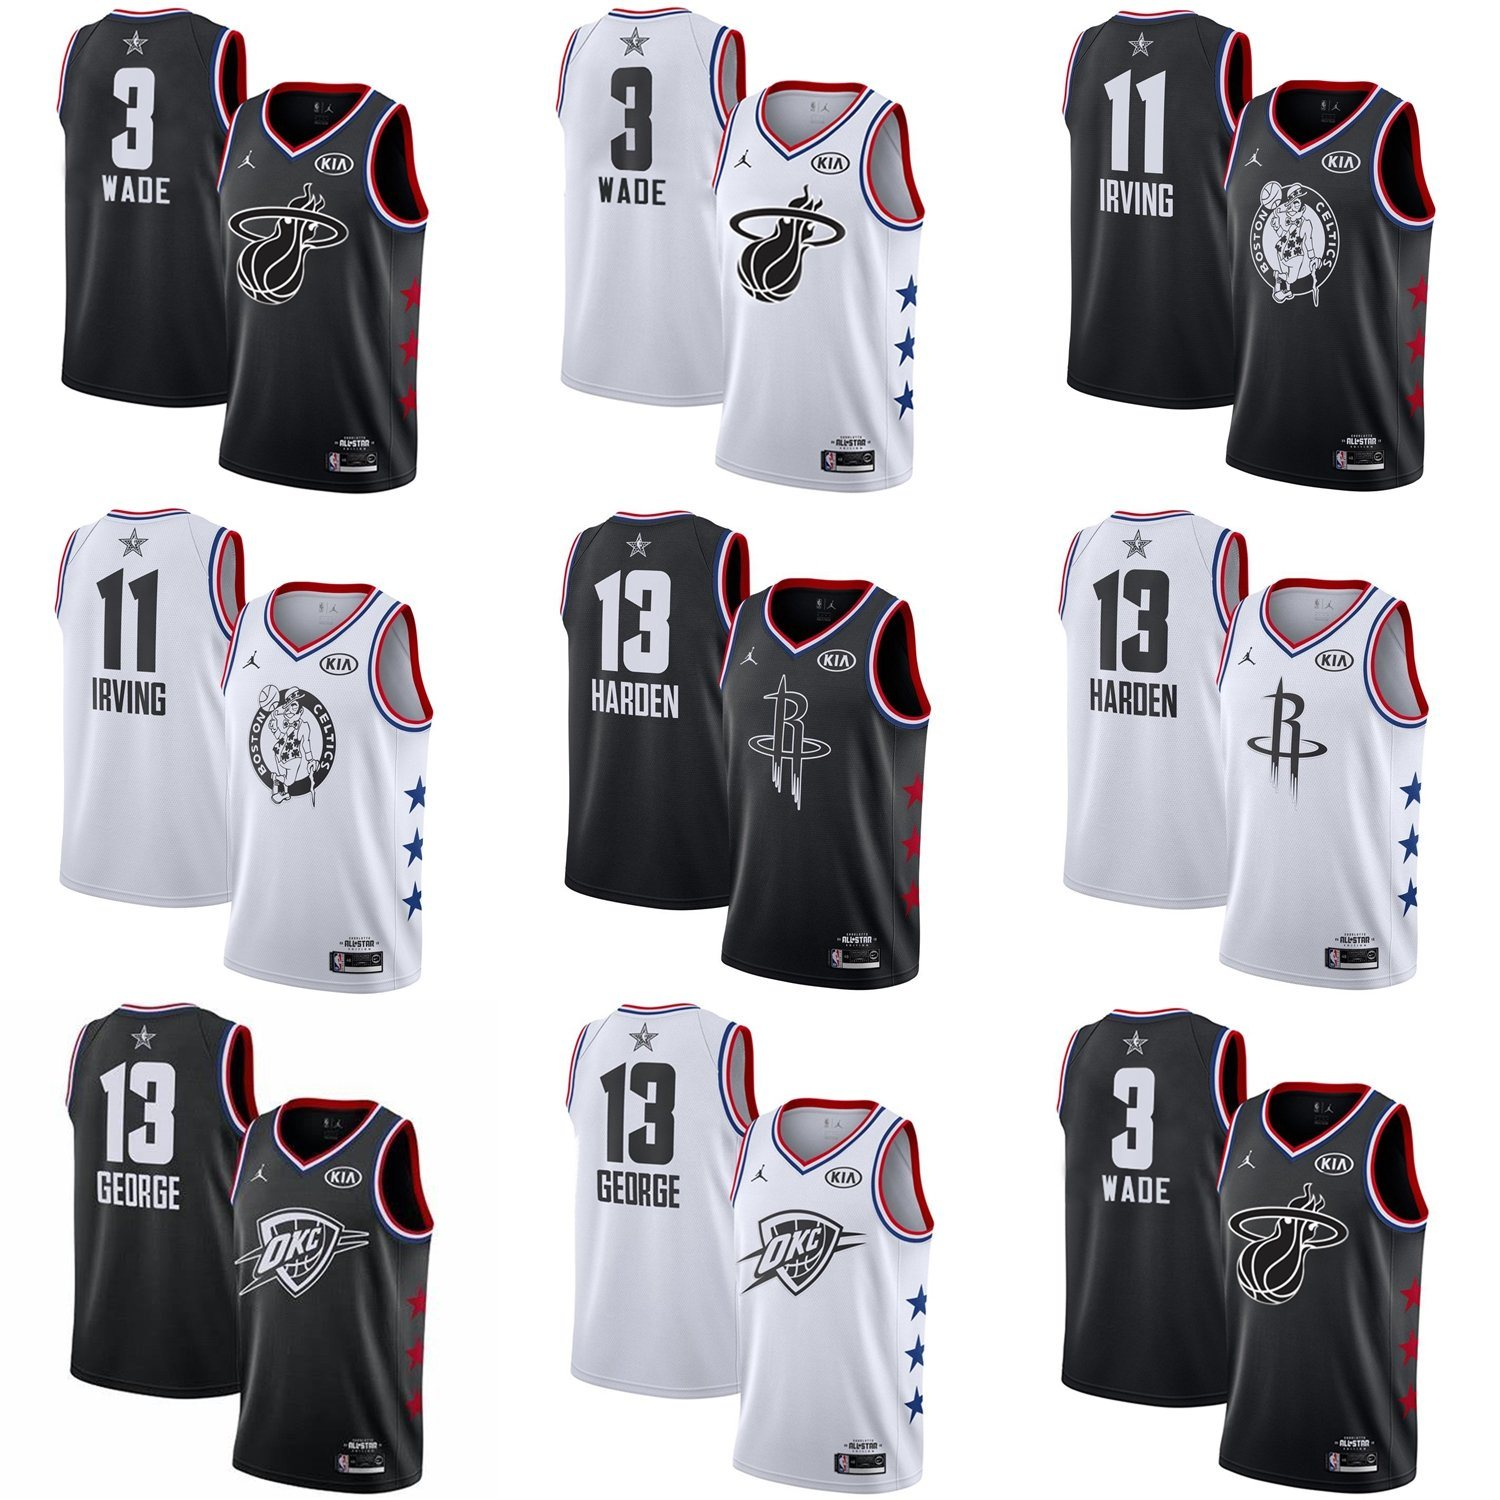 reputable site 39160 03759 [Hot Item] 2019 All-Star Dwyane Wade Kyrie Irving Harden George Basketball  Jerseys